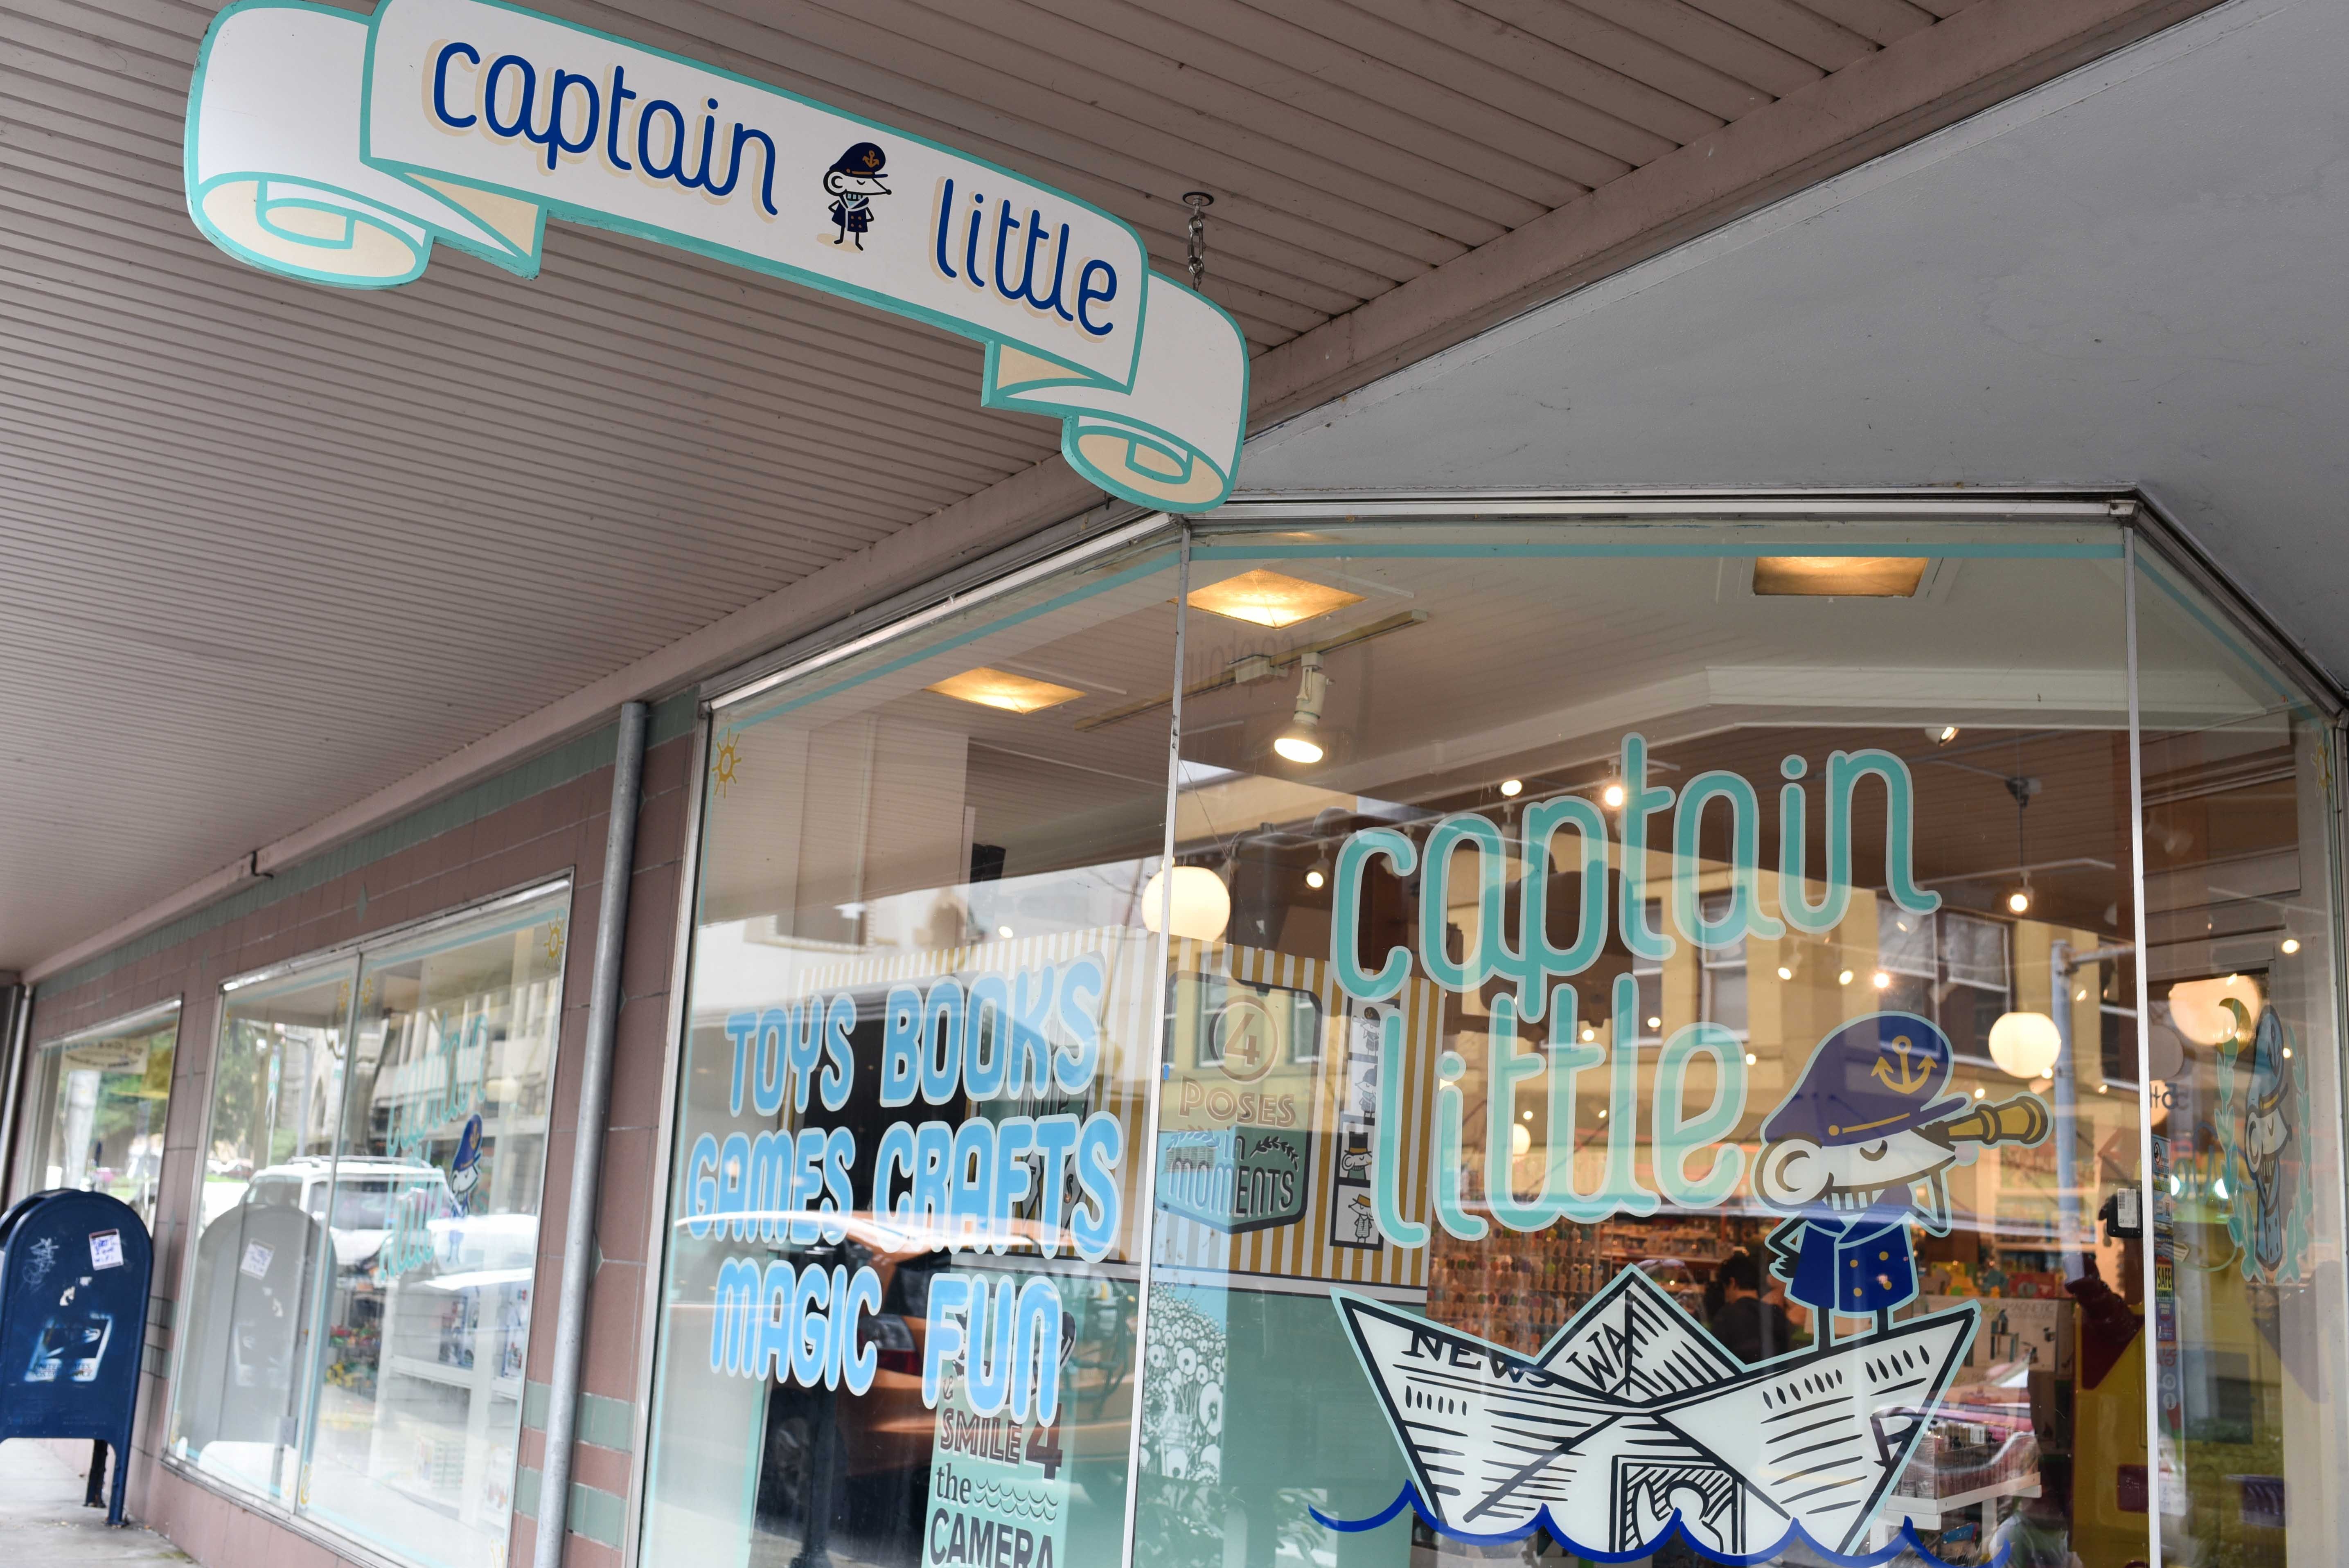 Olympia has great shops and one of the best toy shops, Captain Little. (Image: Rebecca Mongrain/Seattle Refined)